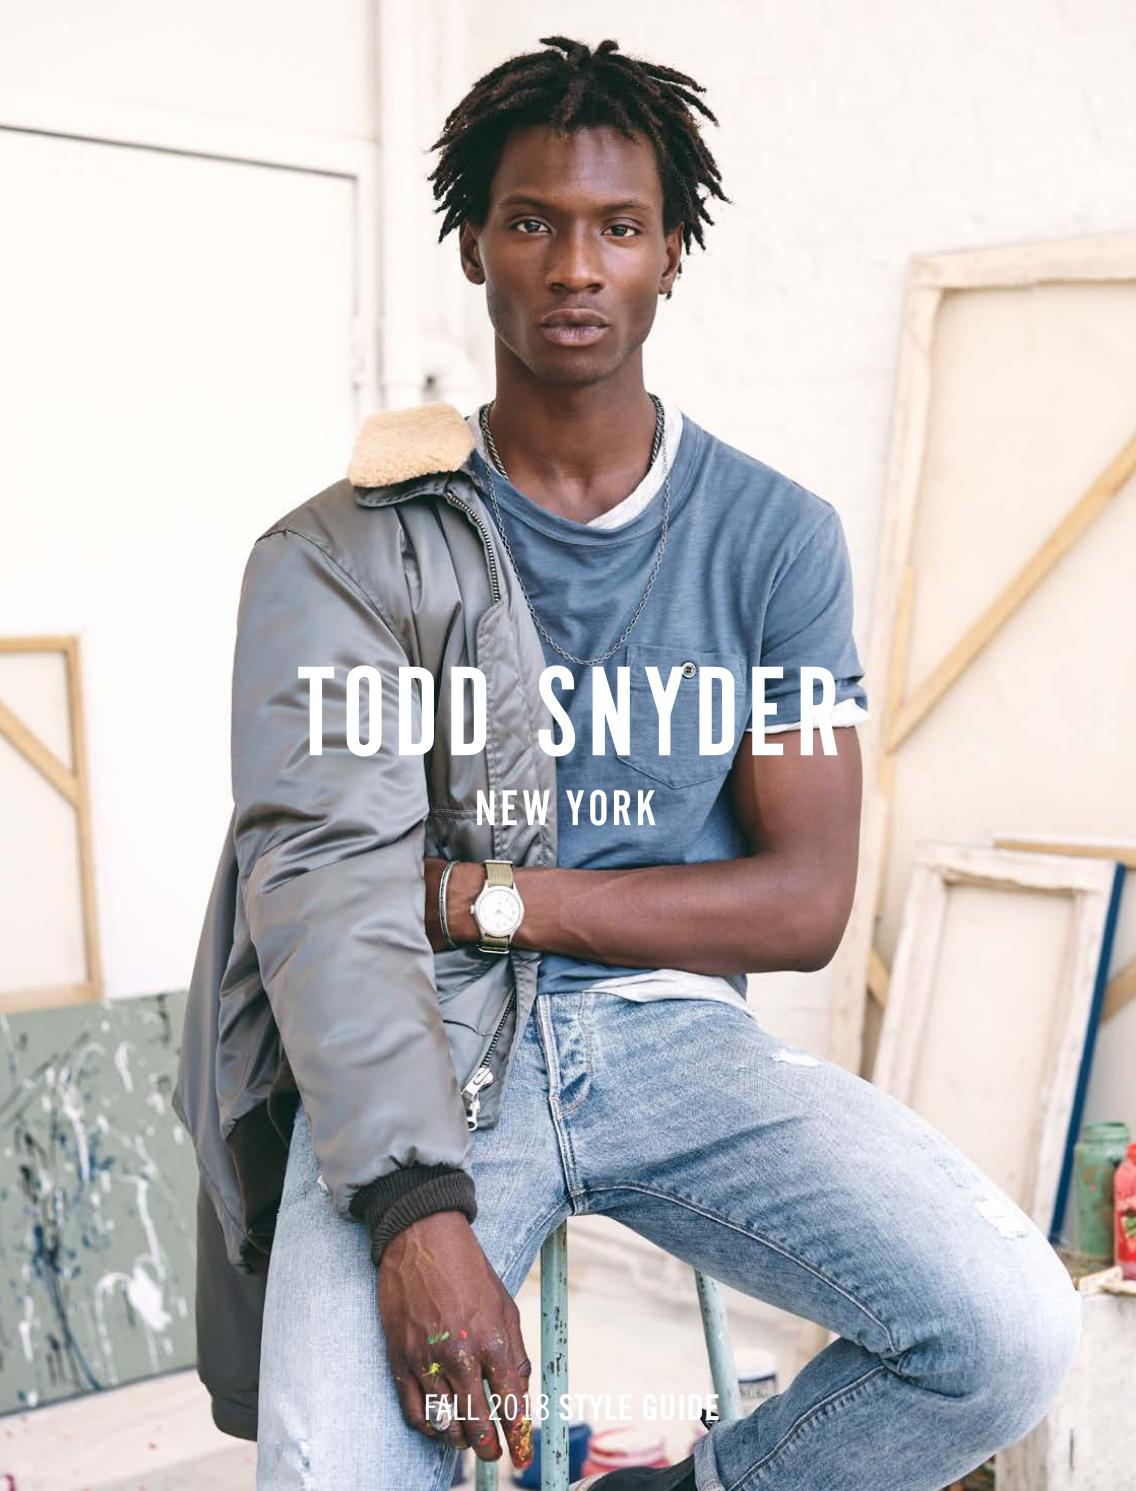 dcb1a426c0604 Todd Snyder Fall 2018 Catalog by Todd Snyder - issuu